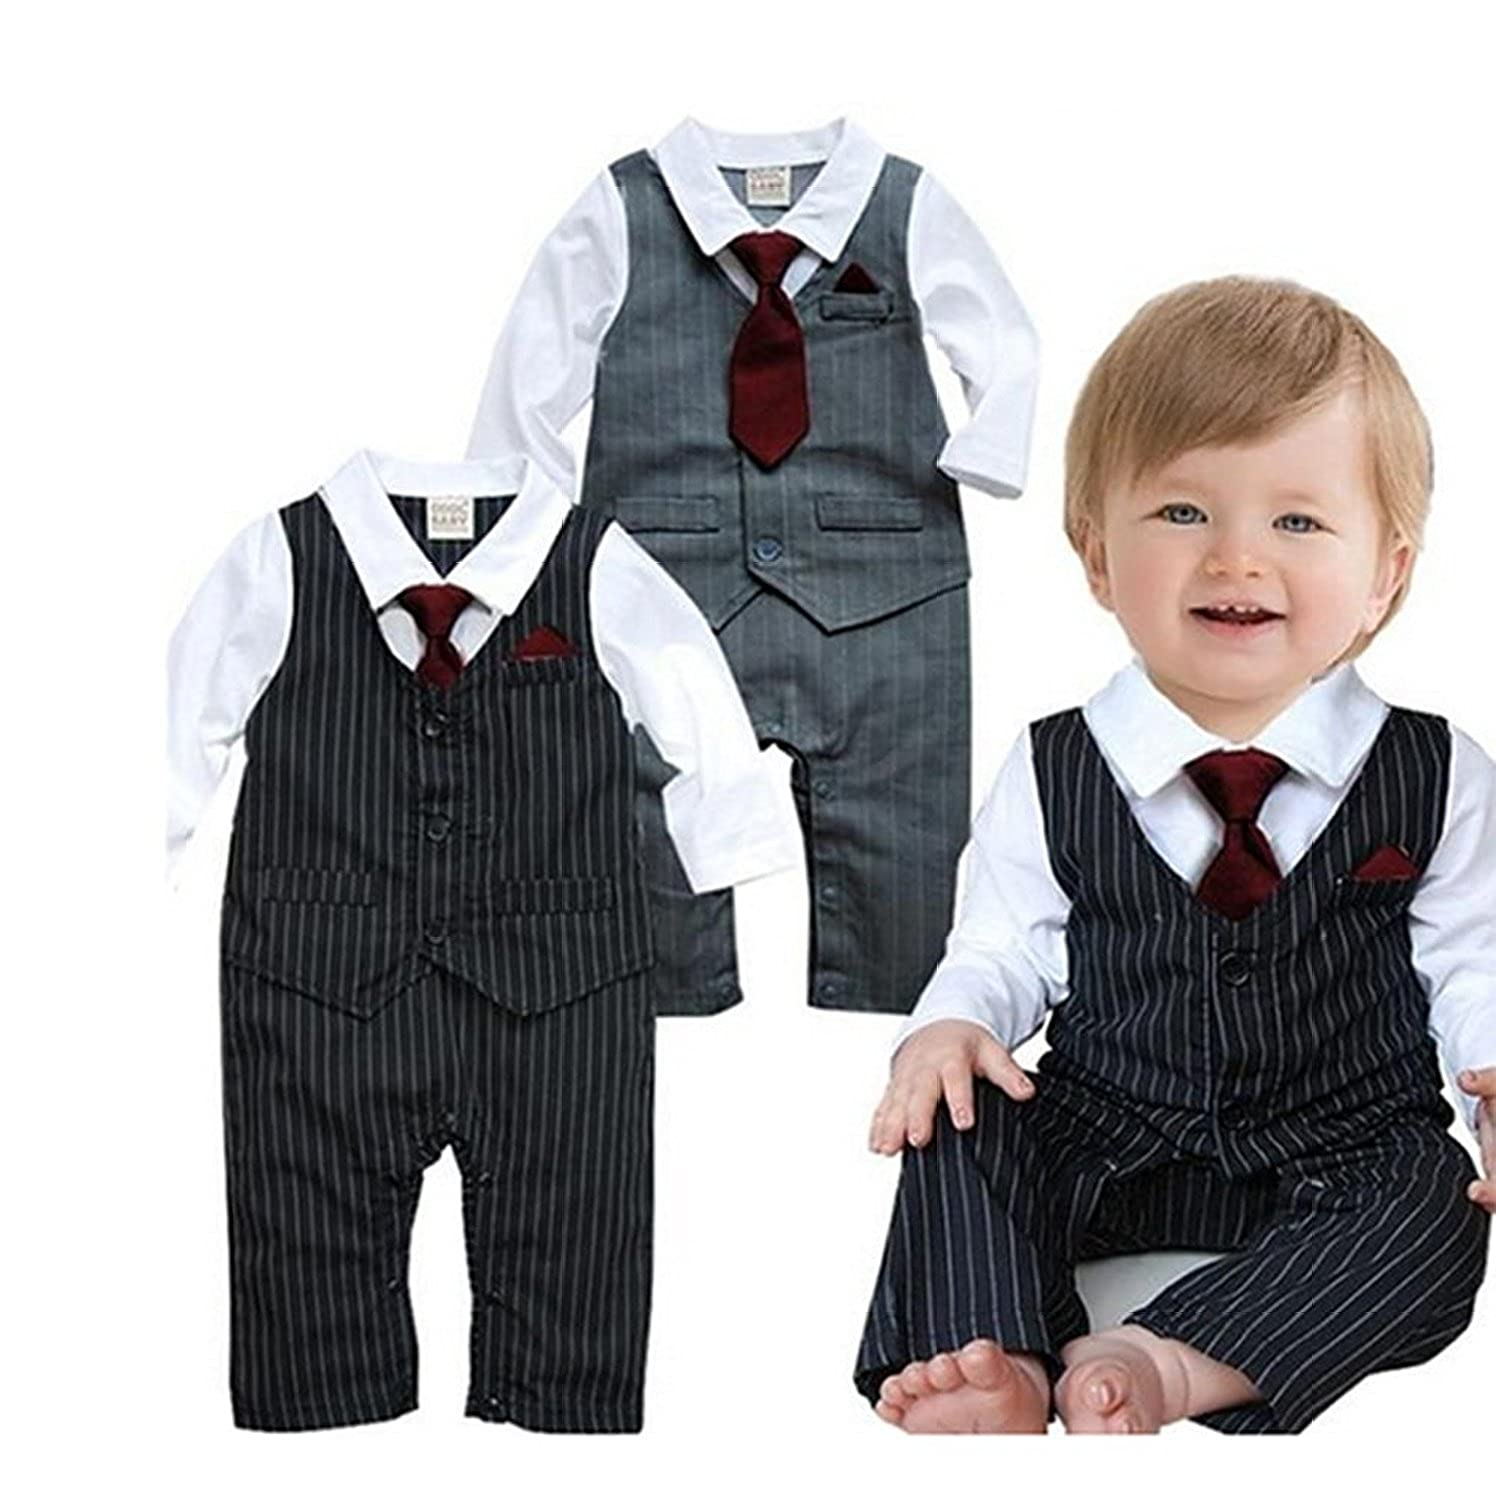 Amazon.com: EGELEXY Baby Tie Striped Vest Formal Wear Wedding Baby ...